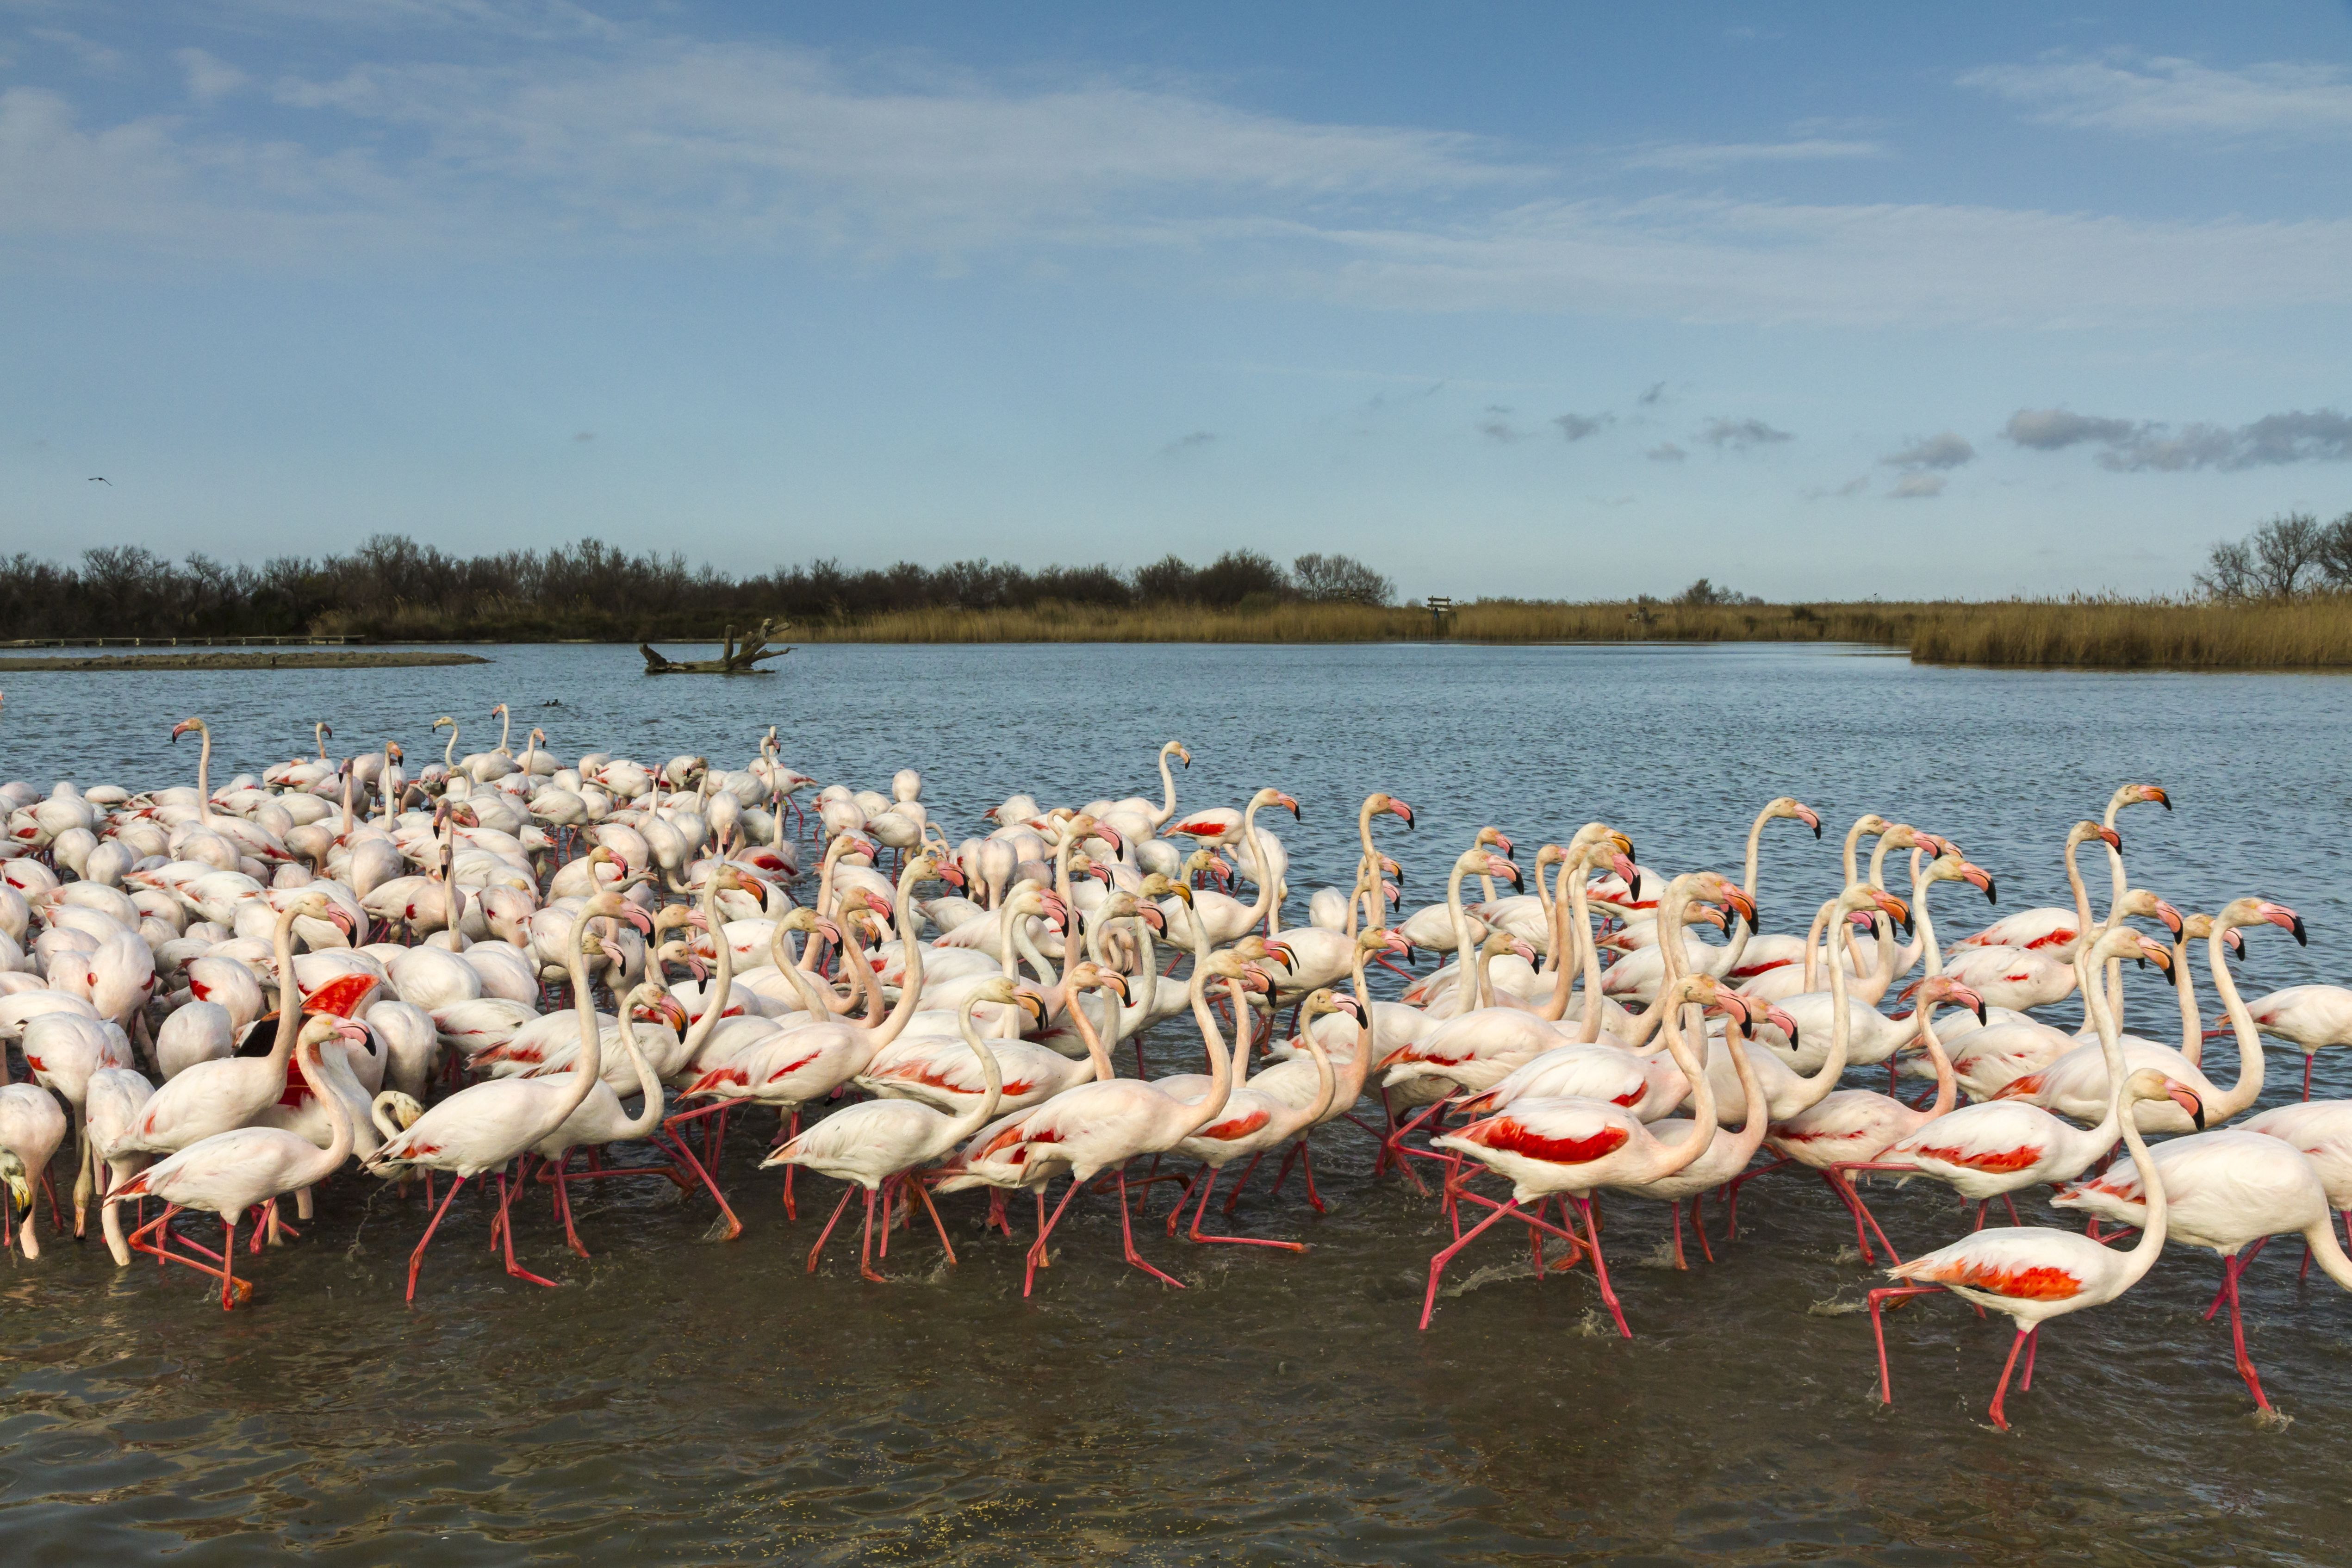 A large flock of Greater Flamingo (Phoenicopterus ruber) on the marsh landscape.